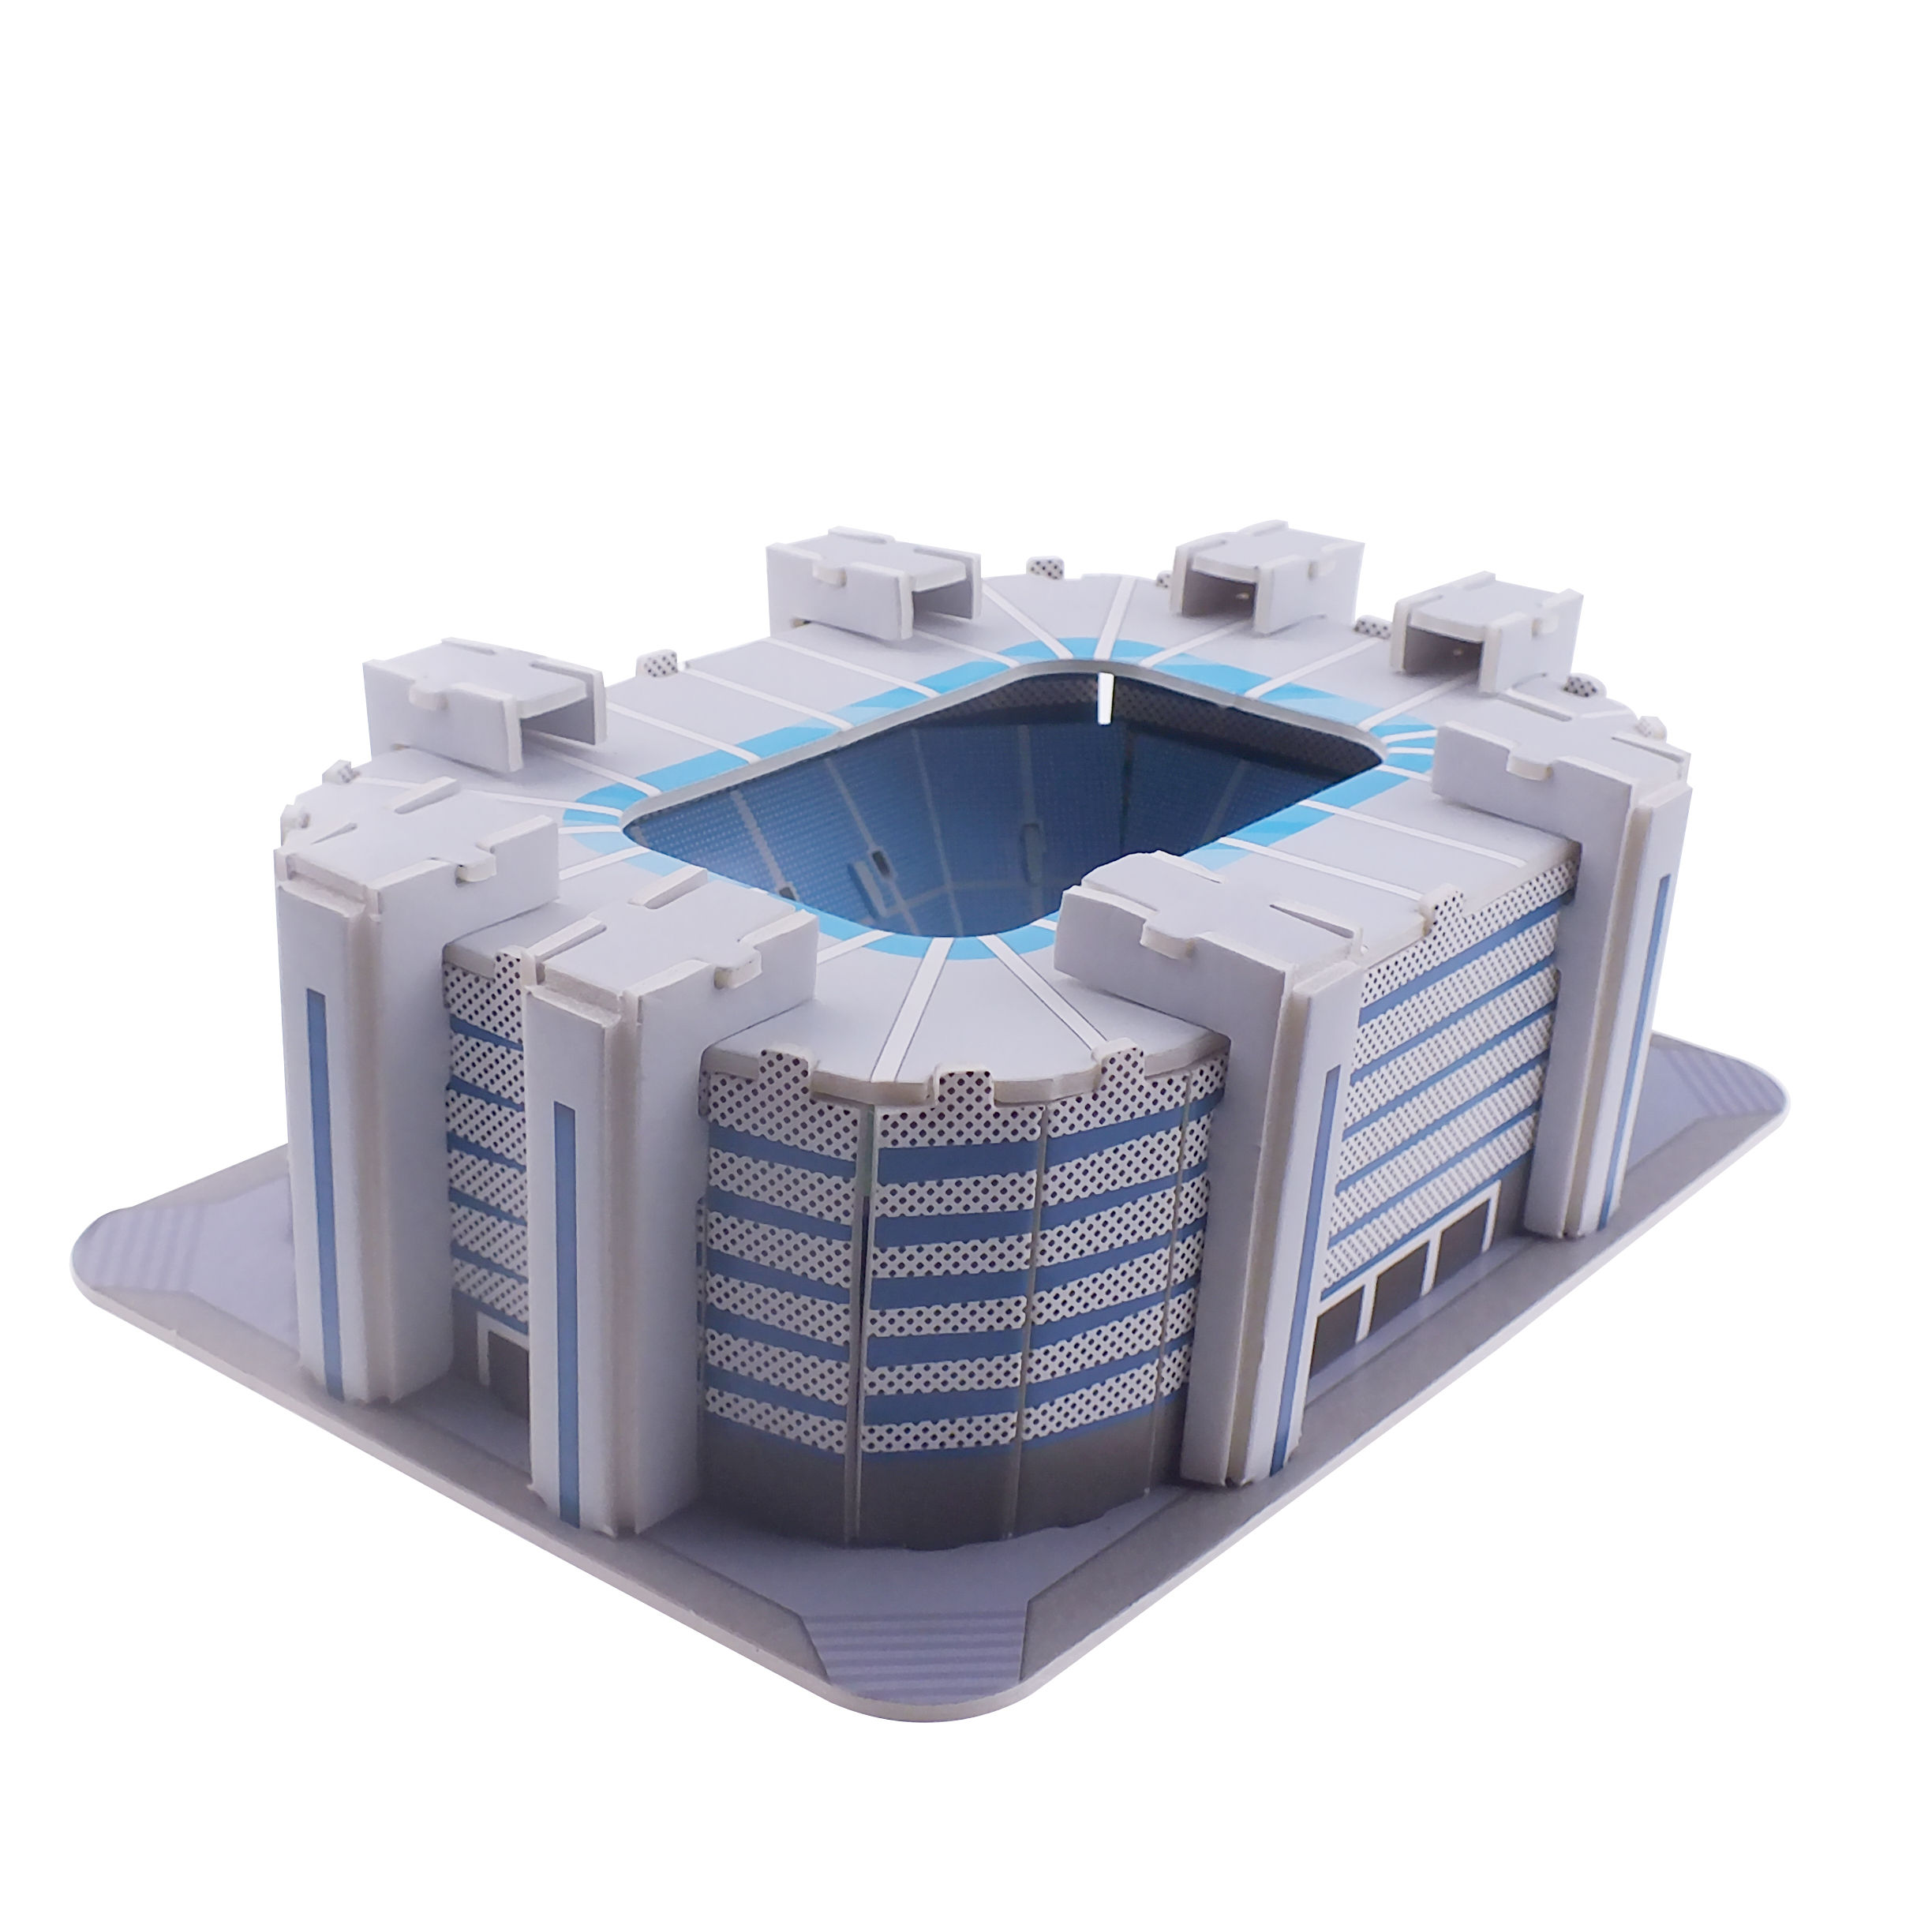 Wholesale football playground 3D Puzzle Jigsaw puzzles for promotion gift